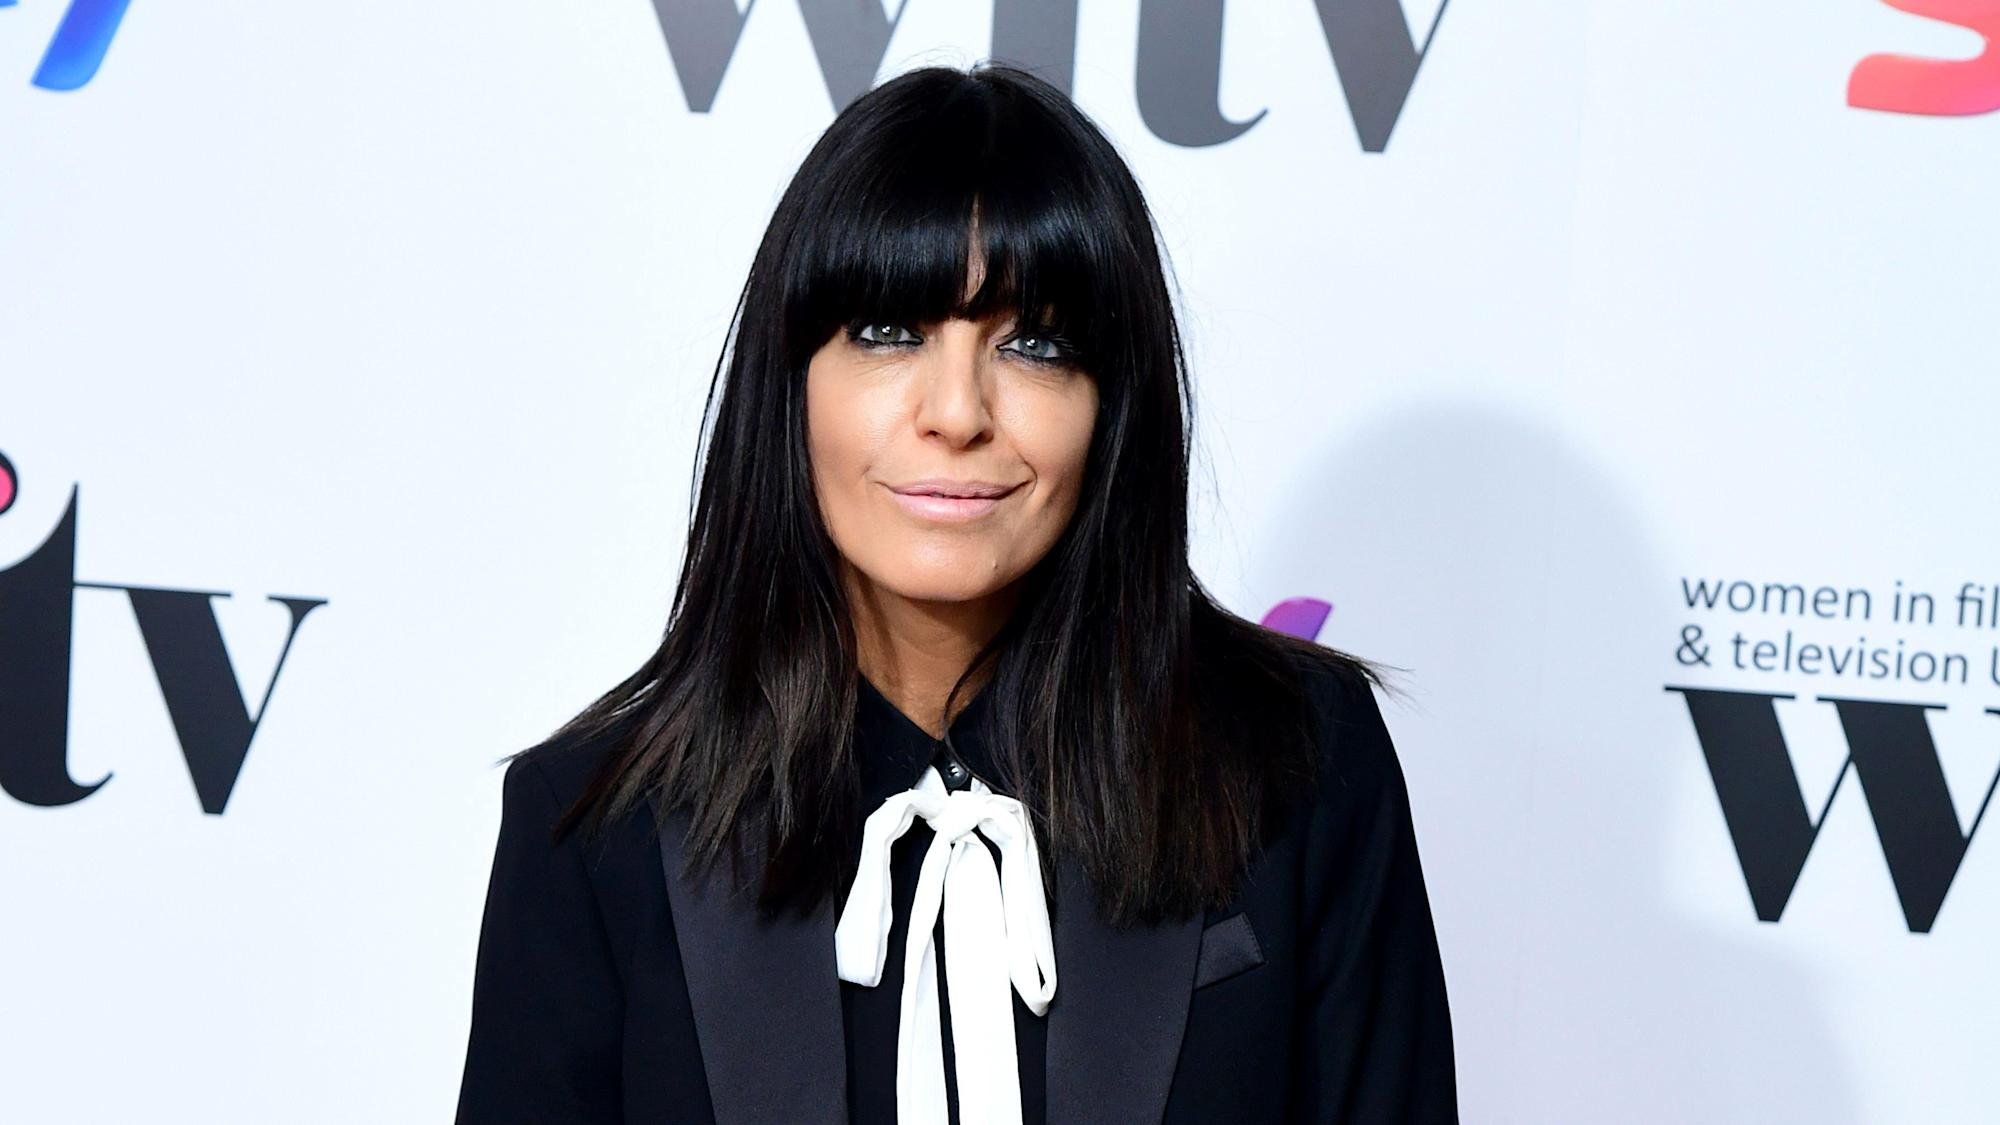 Claudia Winkleman on why she wants to look like aging rockers